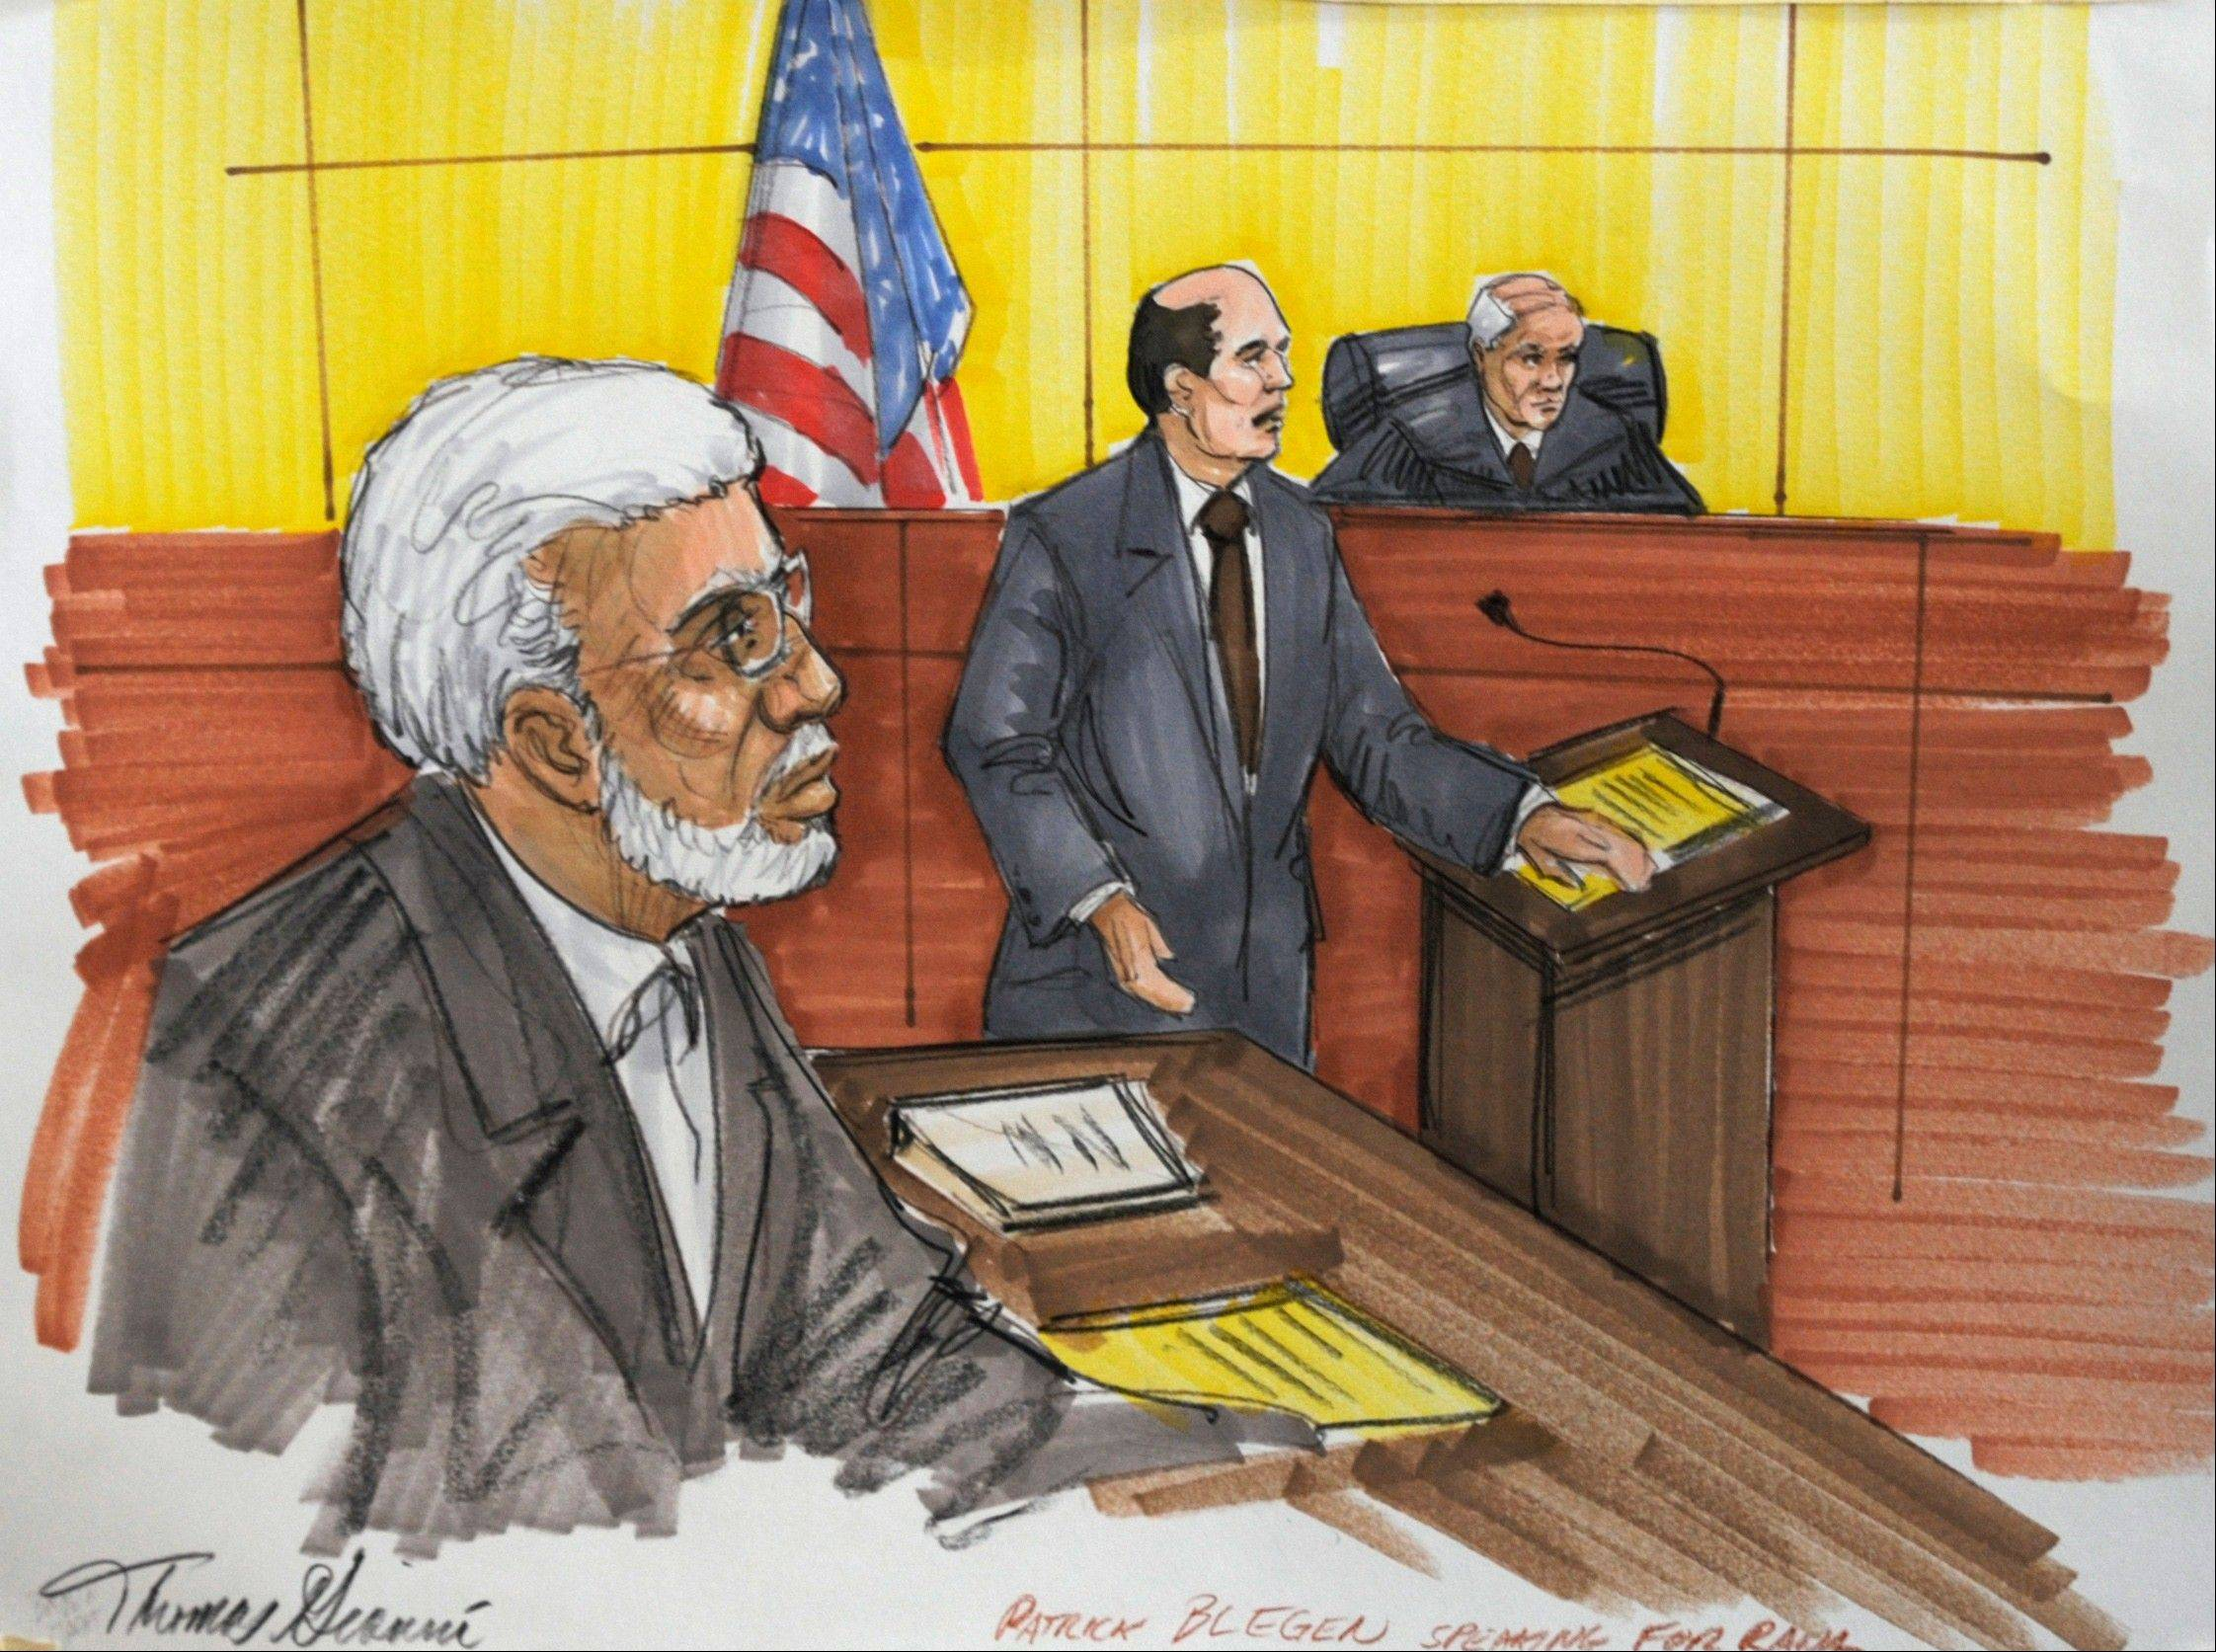 In this June 7 courtroom sketch, Chicago businessman Tahawwur Rana, left, listens to defense attorney Patrick Blegen in federal court in Chicago. Jurors cleared Rana of involvement in the 2008 siege in that left more than 160 people dead in India�s largest city. But they convicted him of lesser charges, including that he provided material support to a Pakistani militant group that took responsibility for the attack.